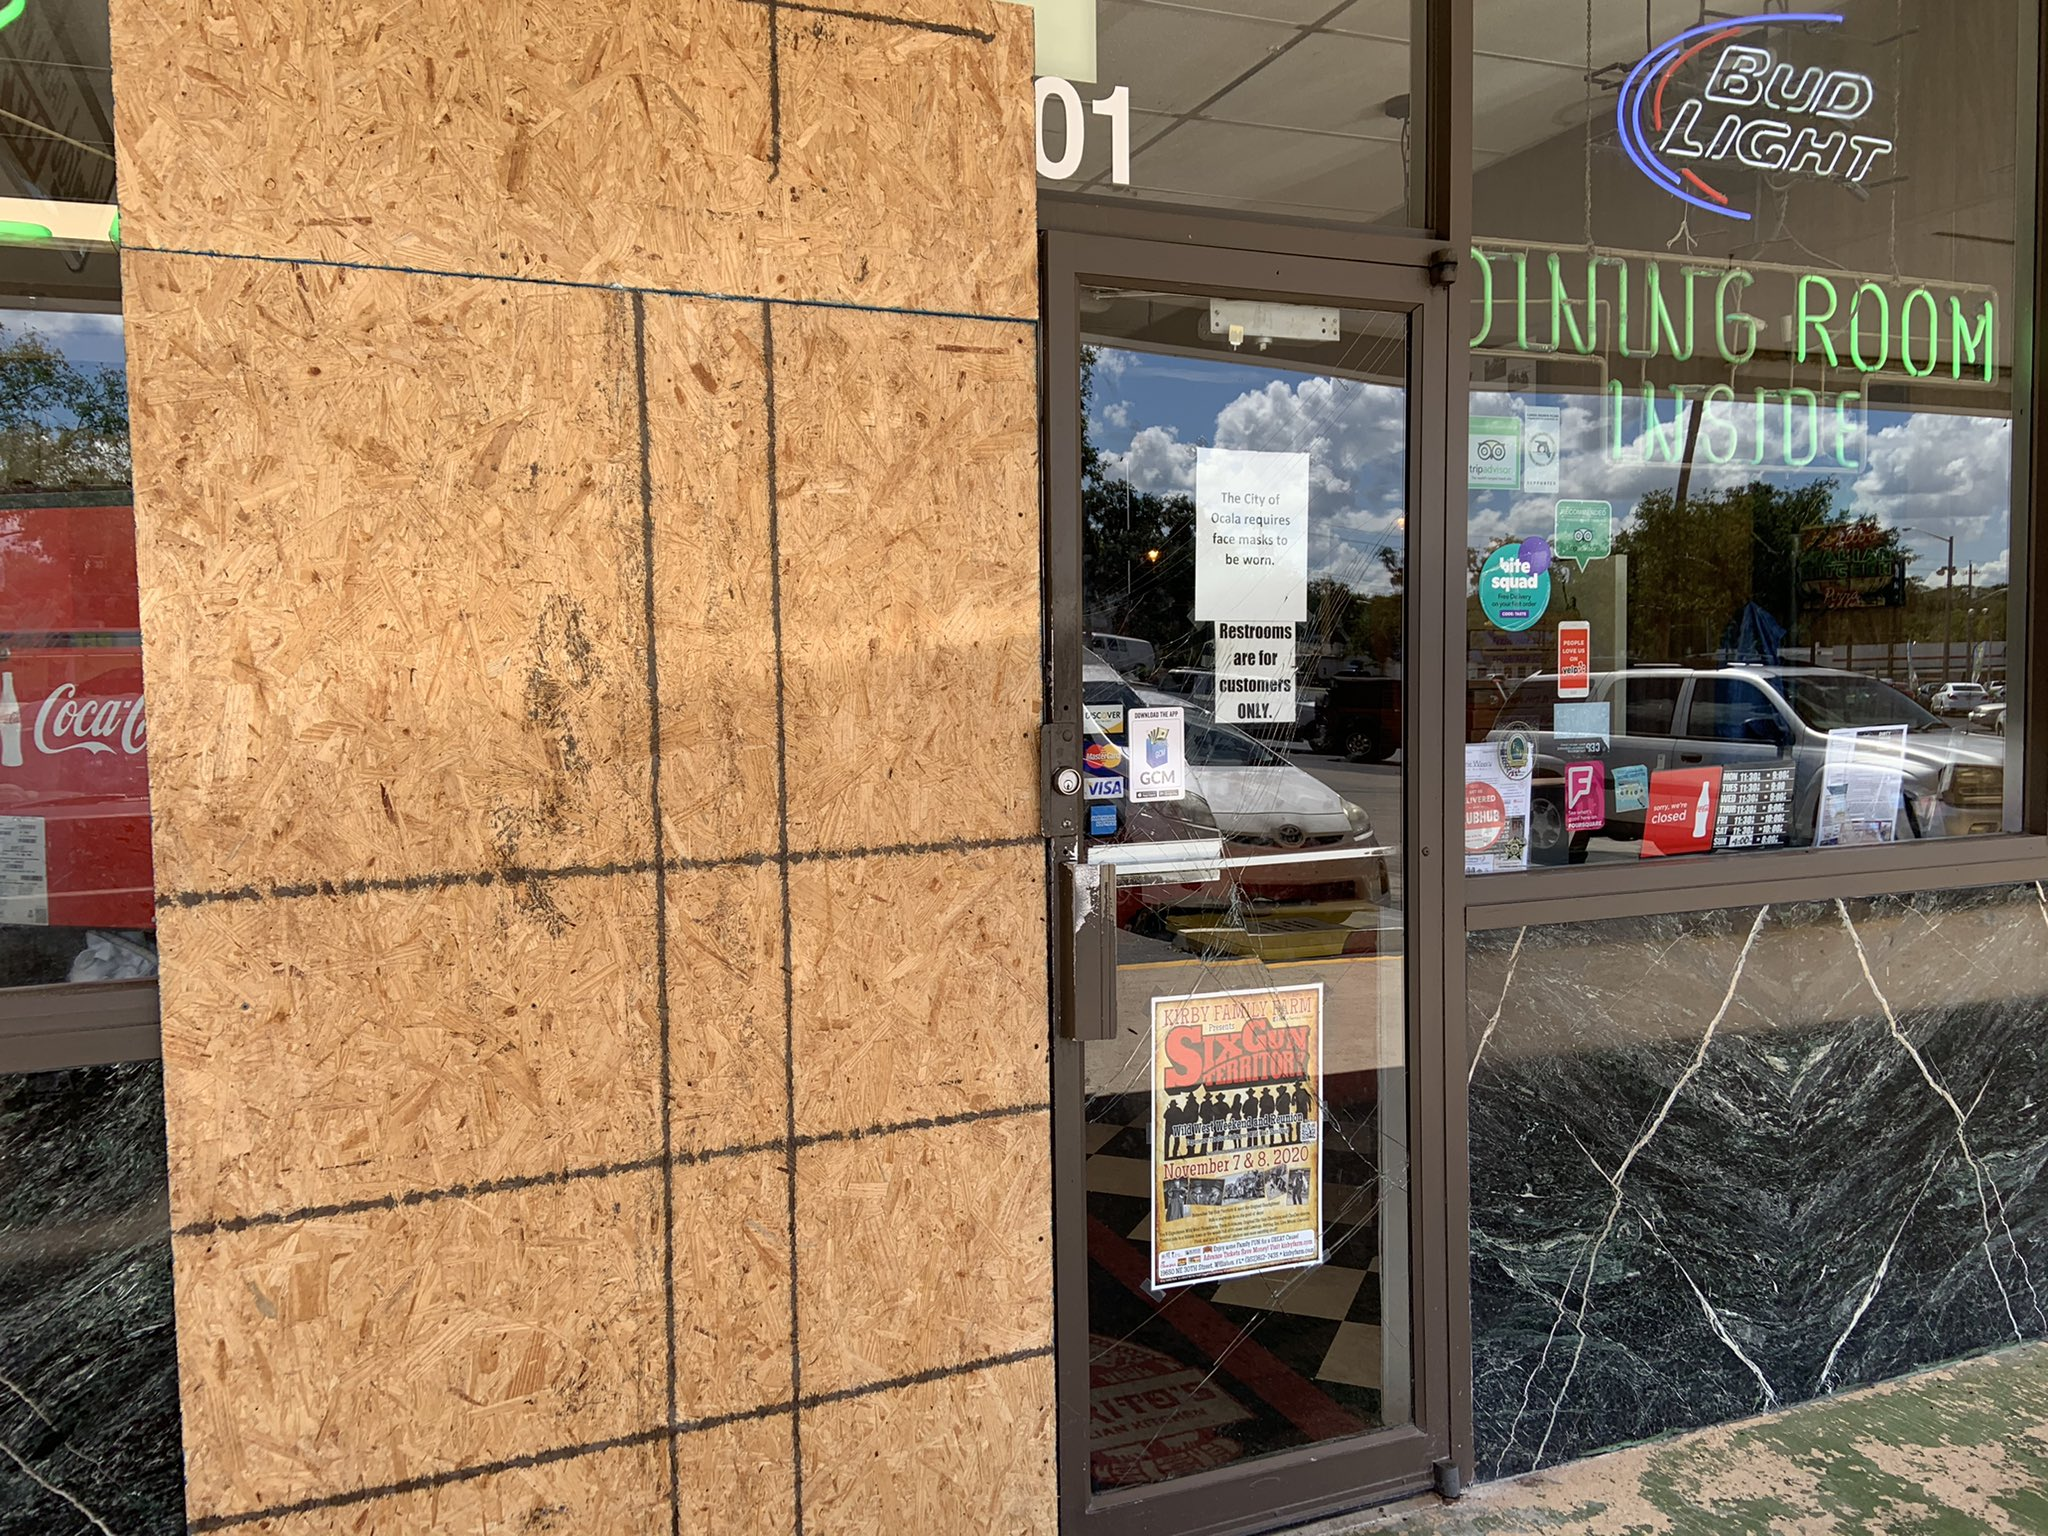 Julia Laude On Twitter Open For Business Lorito S Italian Kitchen Is Back Open For Business Today After Earlier This Week An Elderly Man Accidentally Hit The Gas Pedal Drove Up Onto